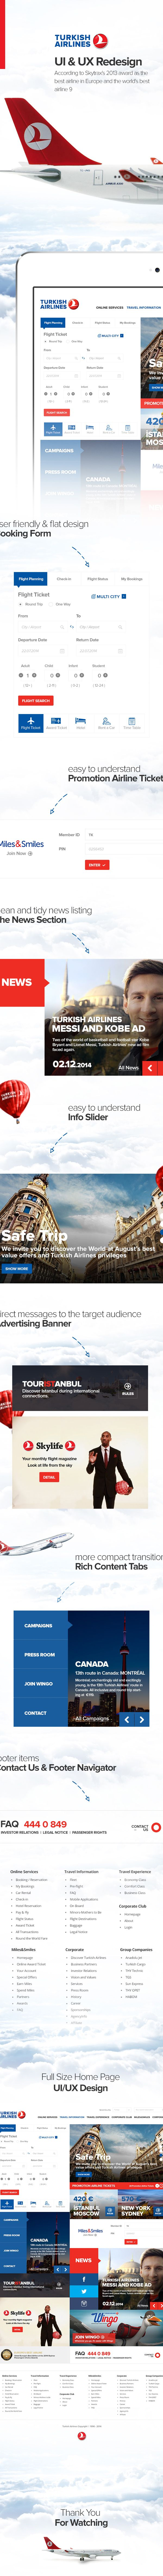 Turkish Airlines Web Site Redesign on Behance